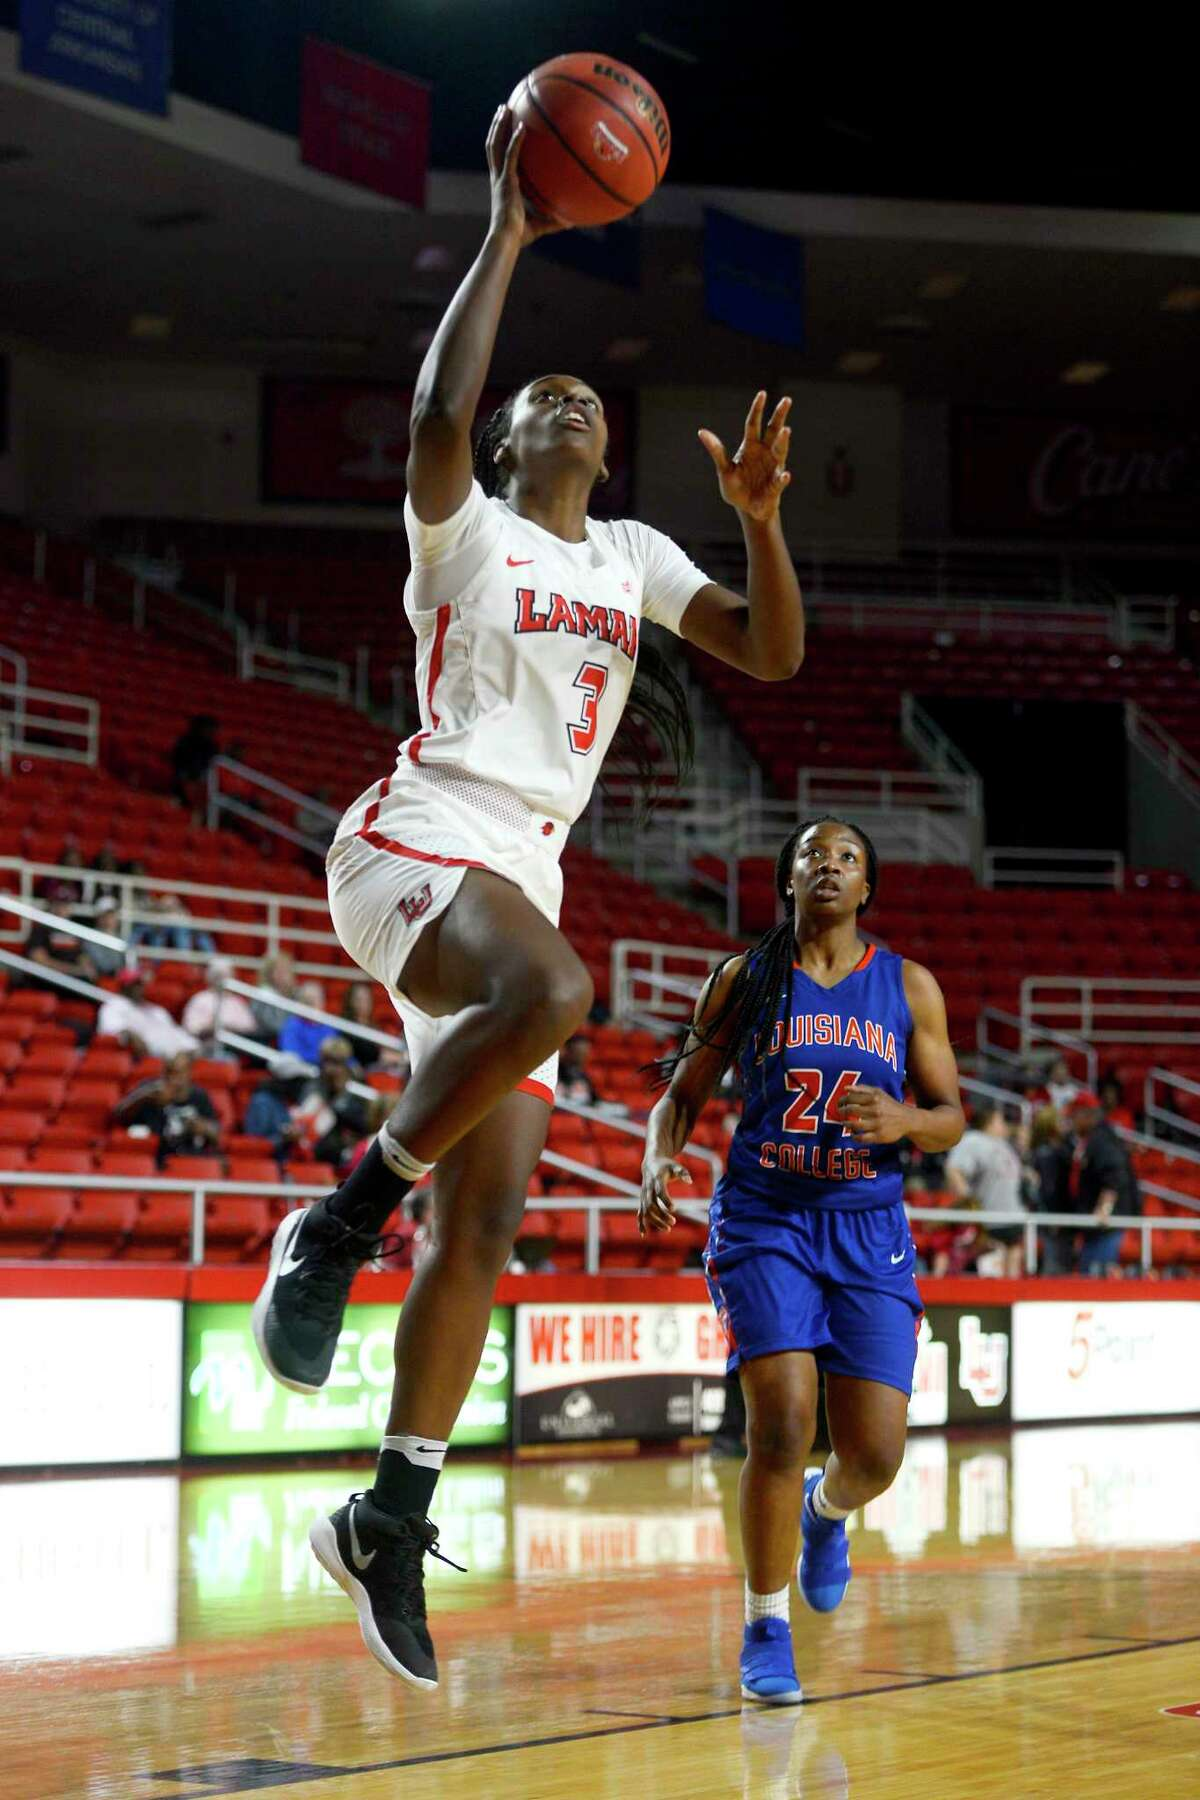 Lamar's Kyla Green takes a layup during the women's basketball team's season opener against Louisiana College at the Montagne Center on Monday night. The Lady Cardinals went undefeated at home last season. Photo taken Monday 11/13/17 Ryan Pelham/The Enterprise